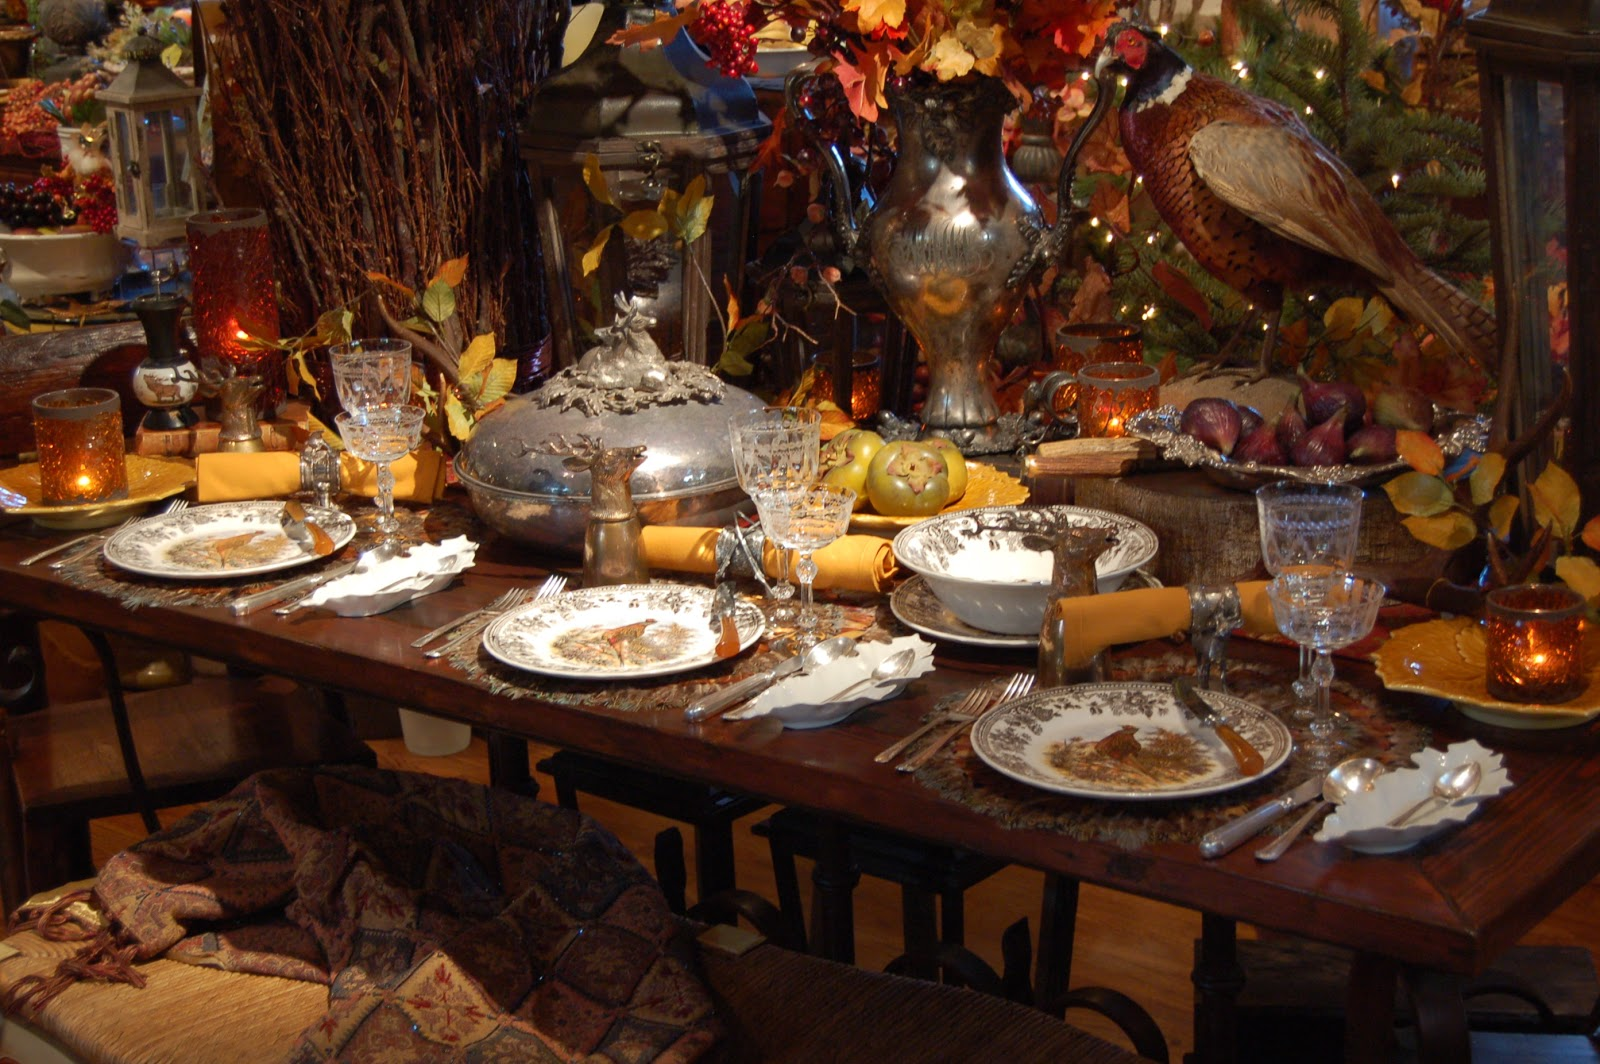 #C1800A Today's Treasure By Jen: Festive Hunt Table And Photo Shoot 5271 decoration table noel mauve 1600x1064 px @ aertt.com